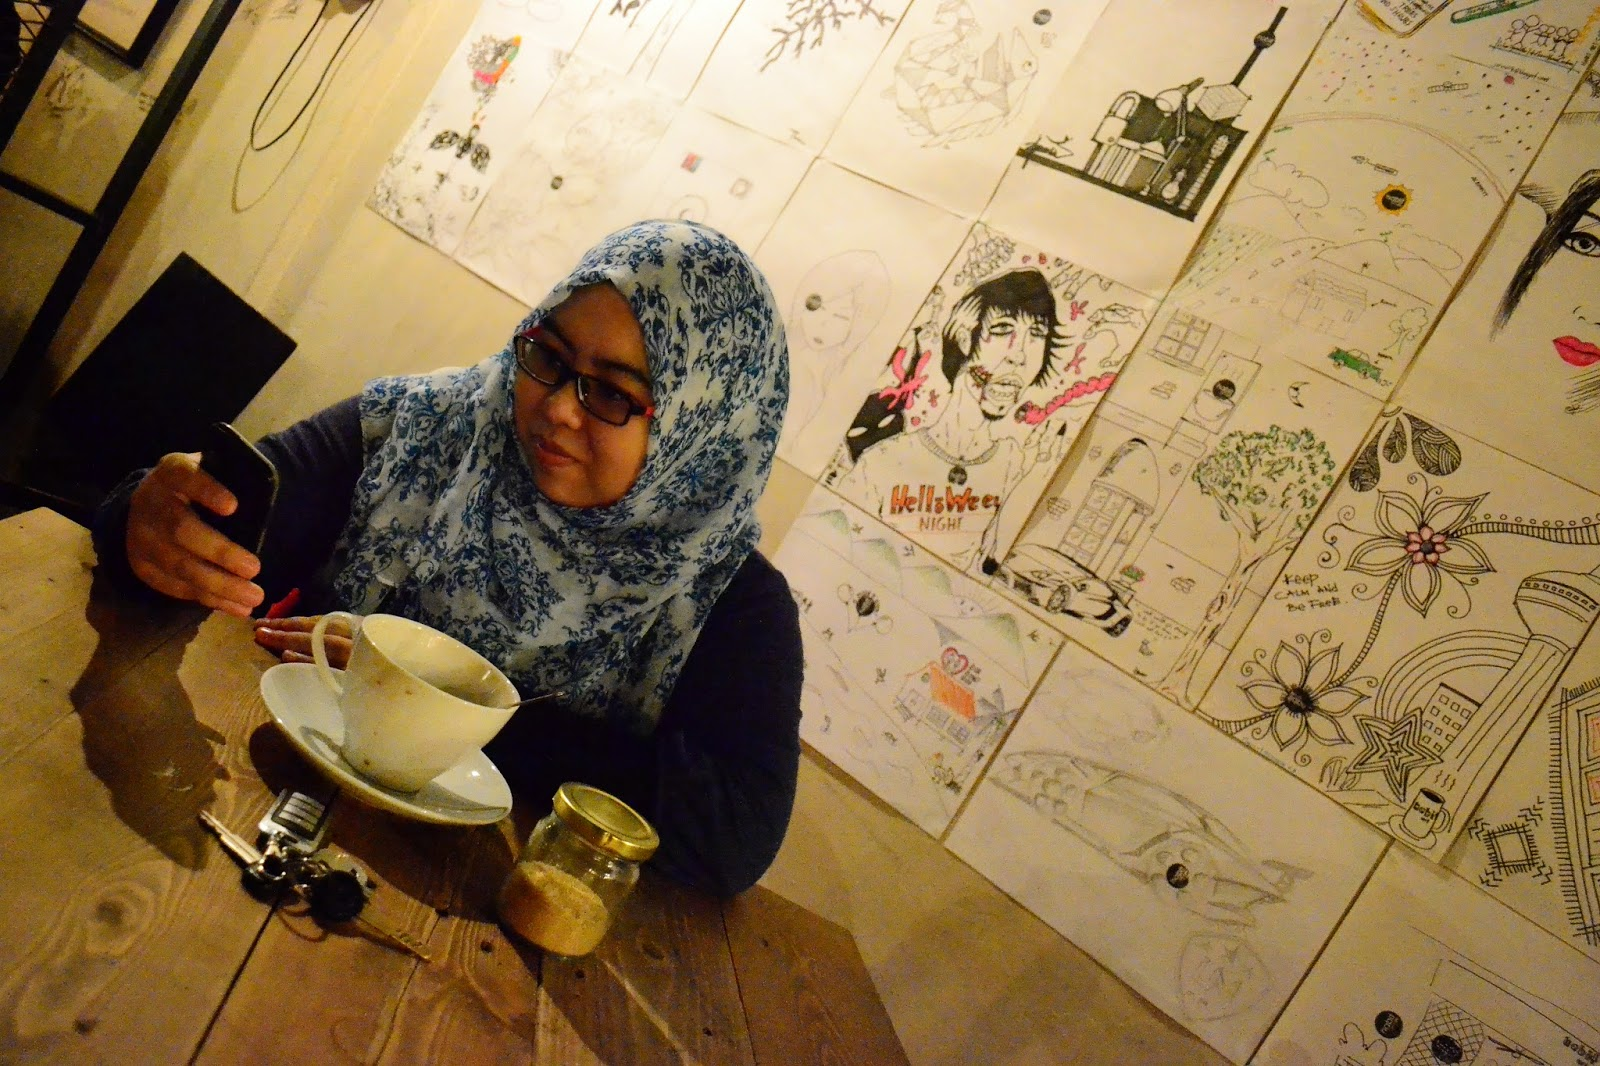 Habit Art Cafe Alor Setar